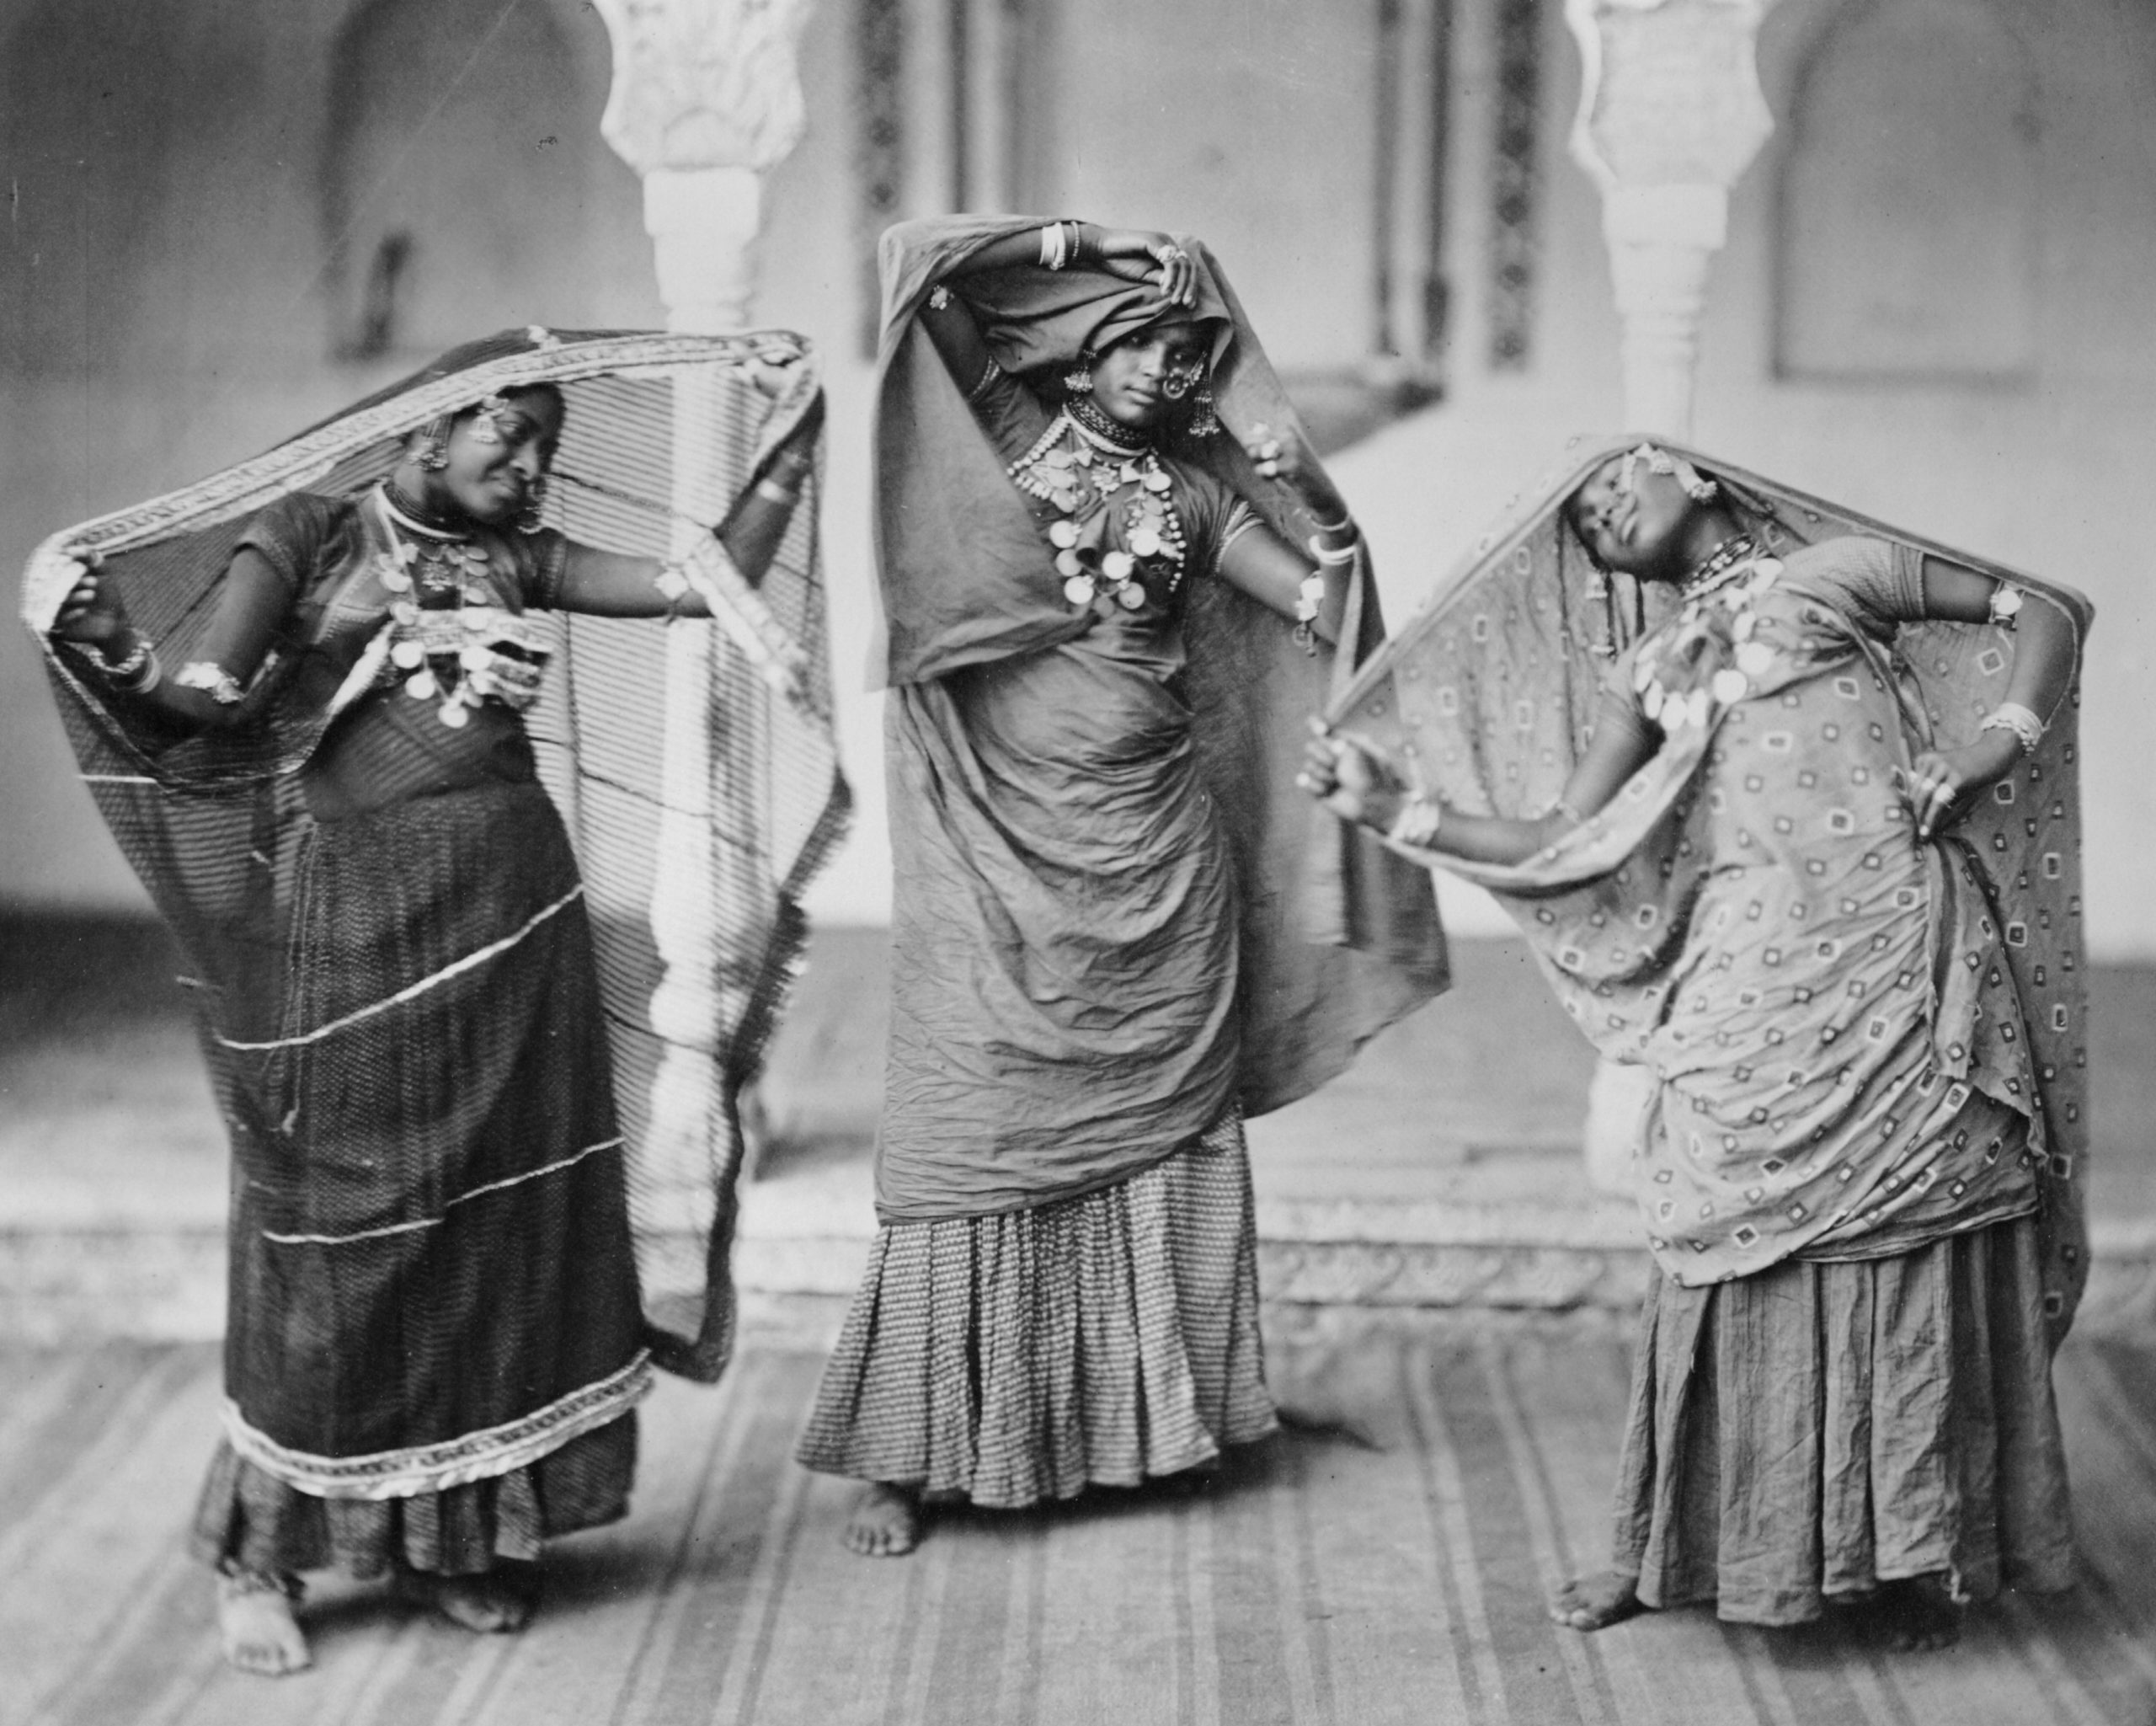 Nineteenth-century photograph showing three women dancing, known as nautch dancers from 1860 to 1870